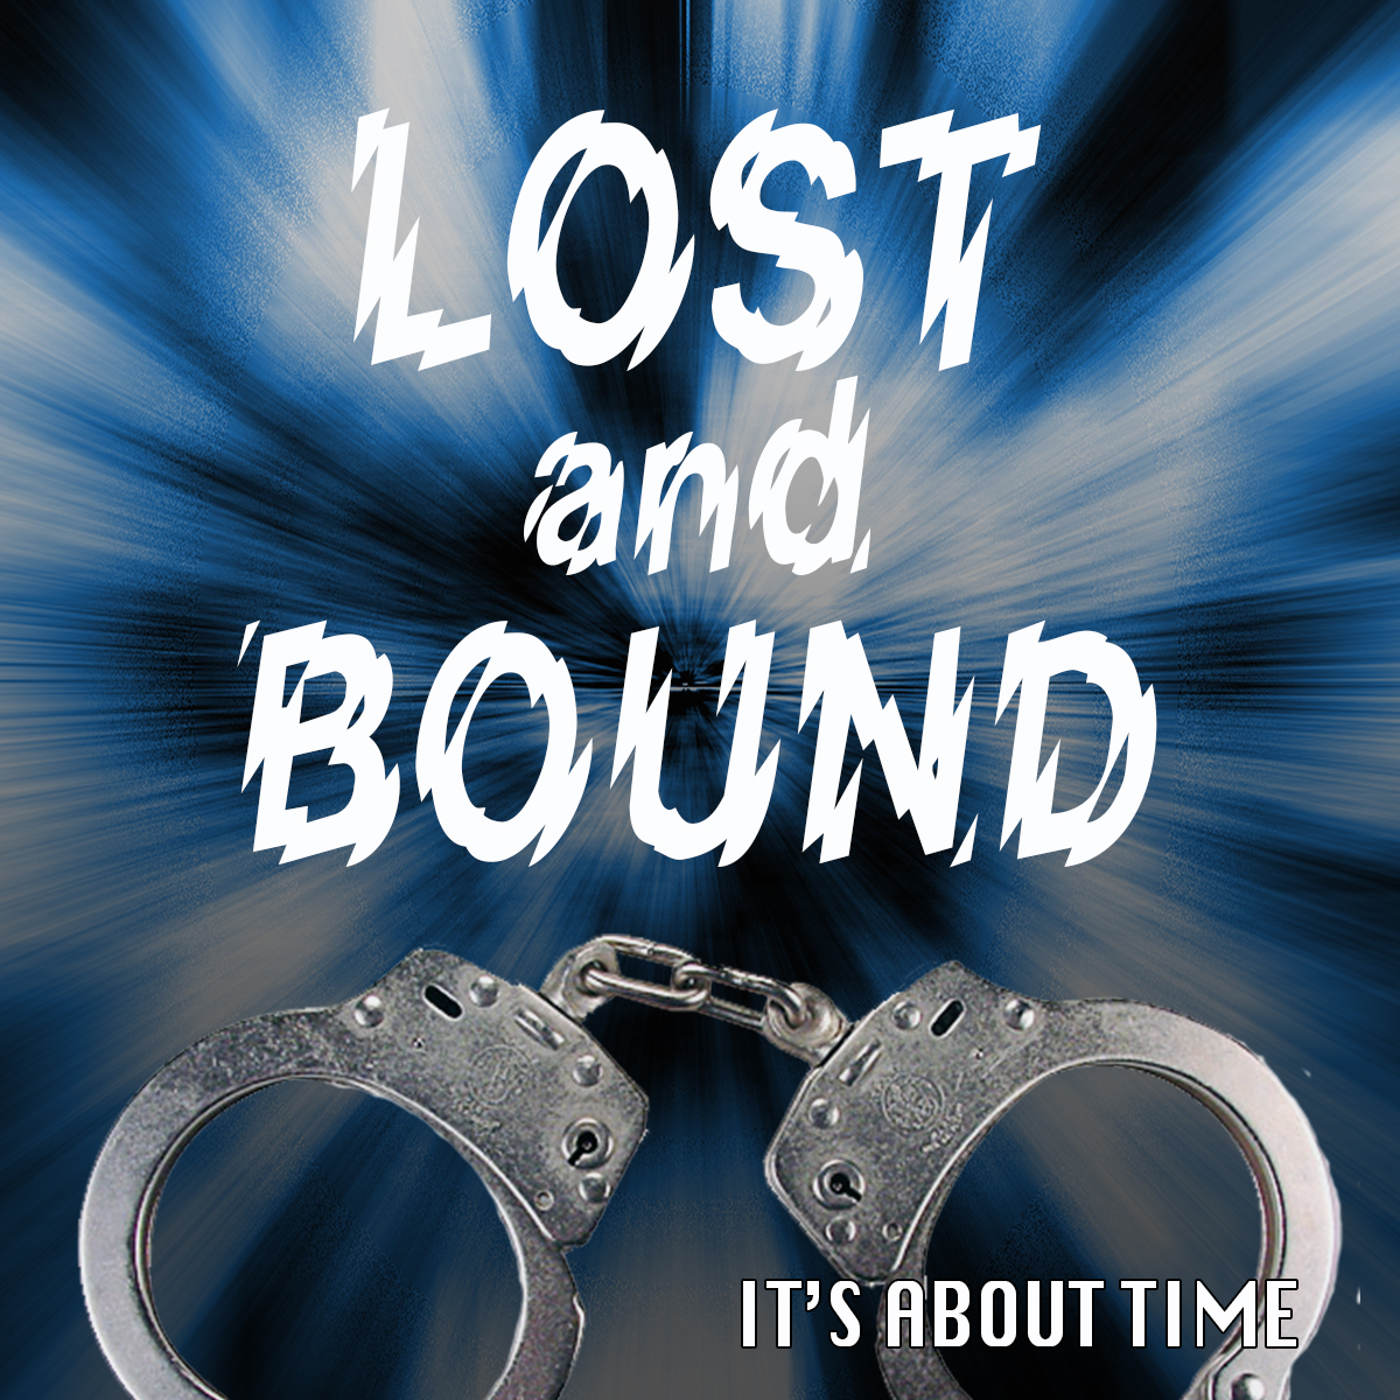 S02E01-Lost and Bound - The sci-fi comedy audio drama picks up where season 1 left off